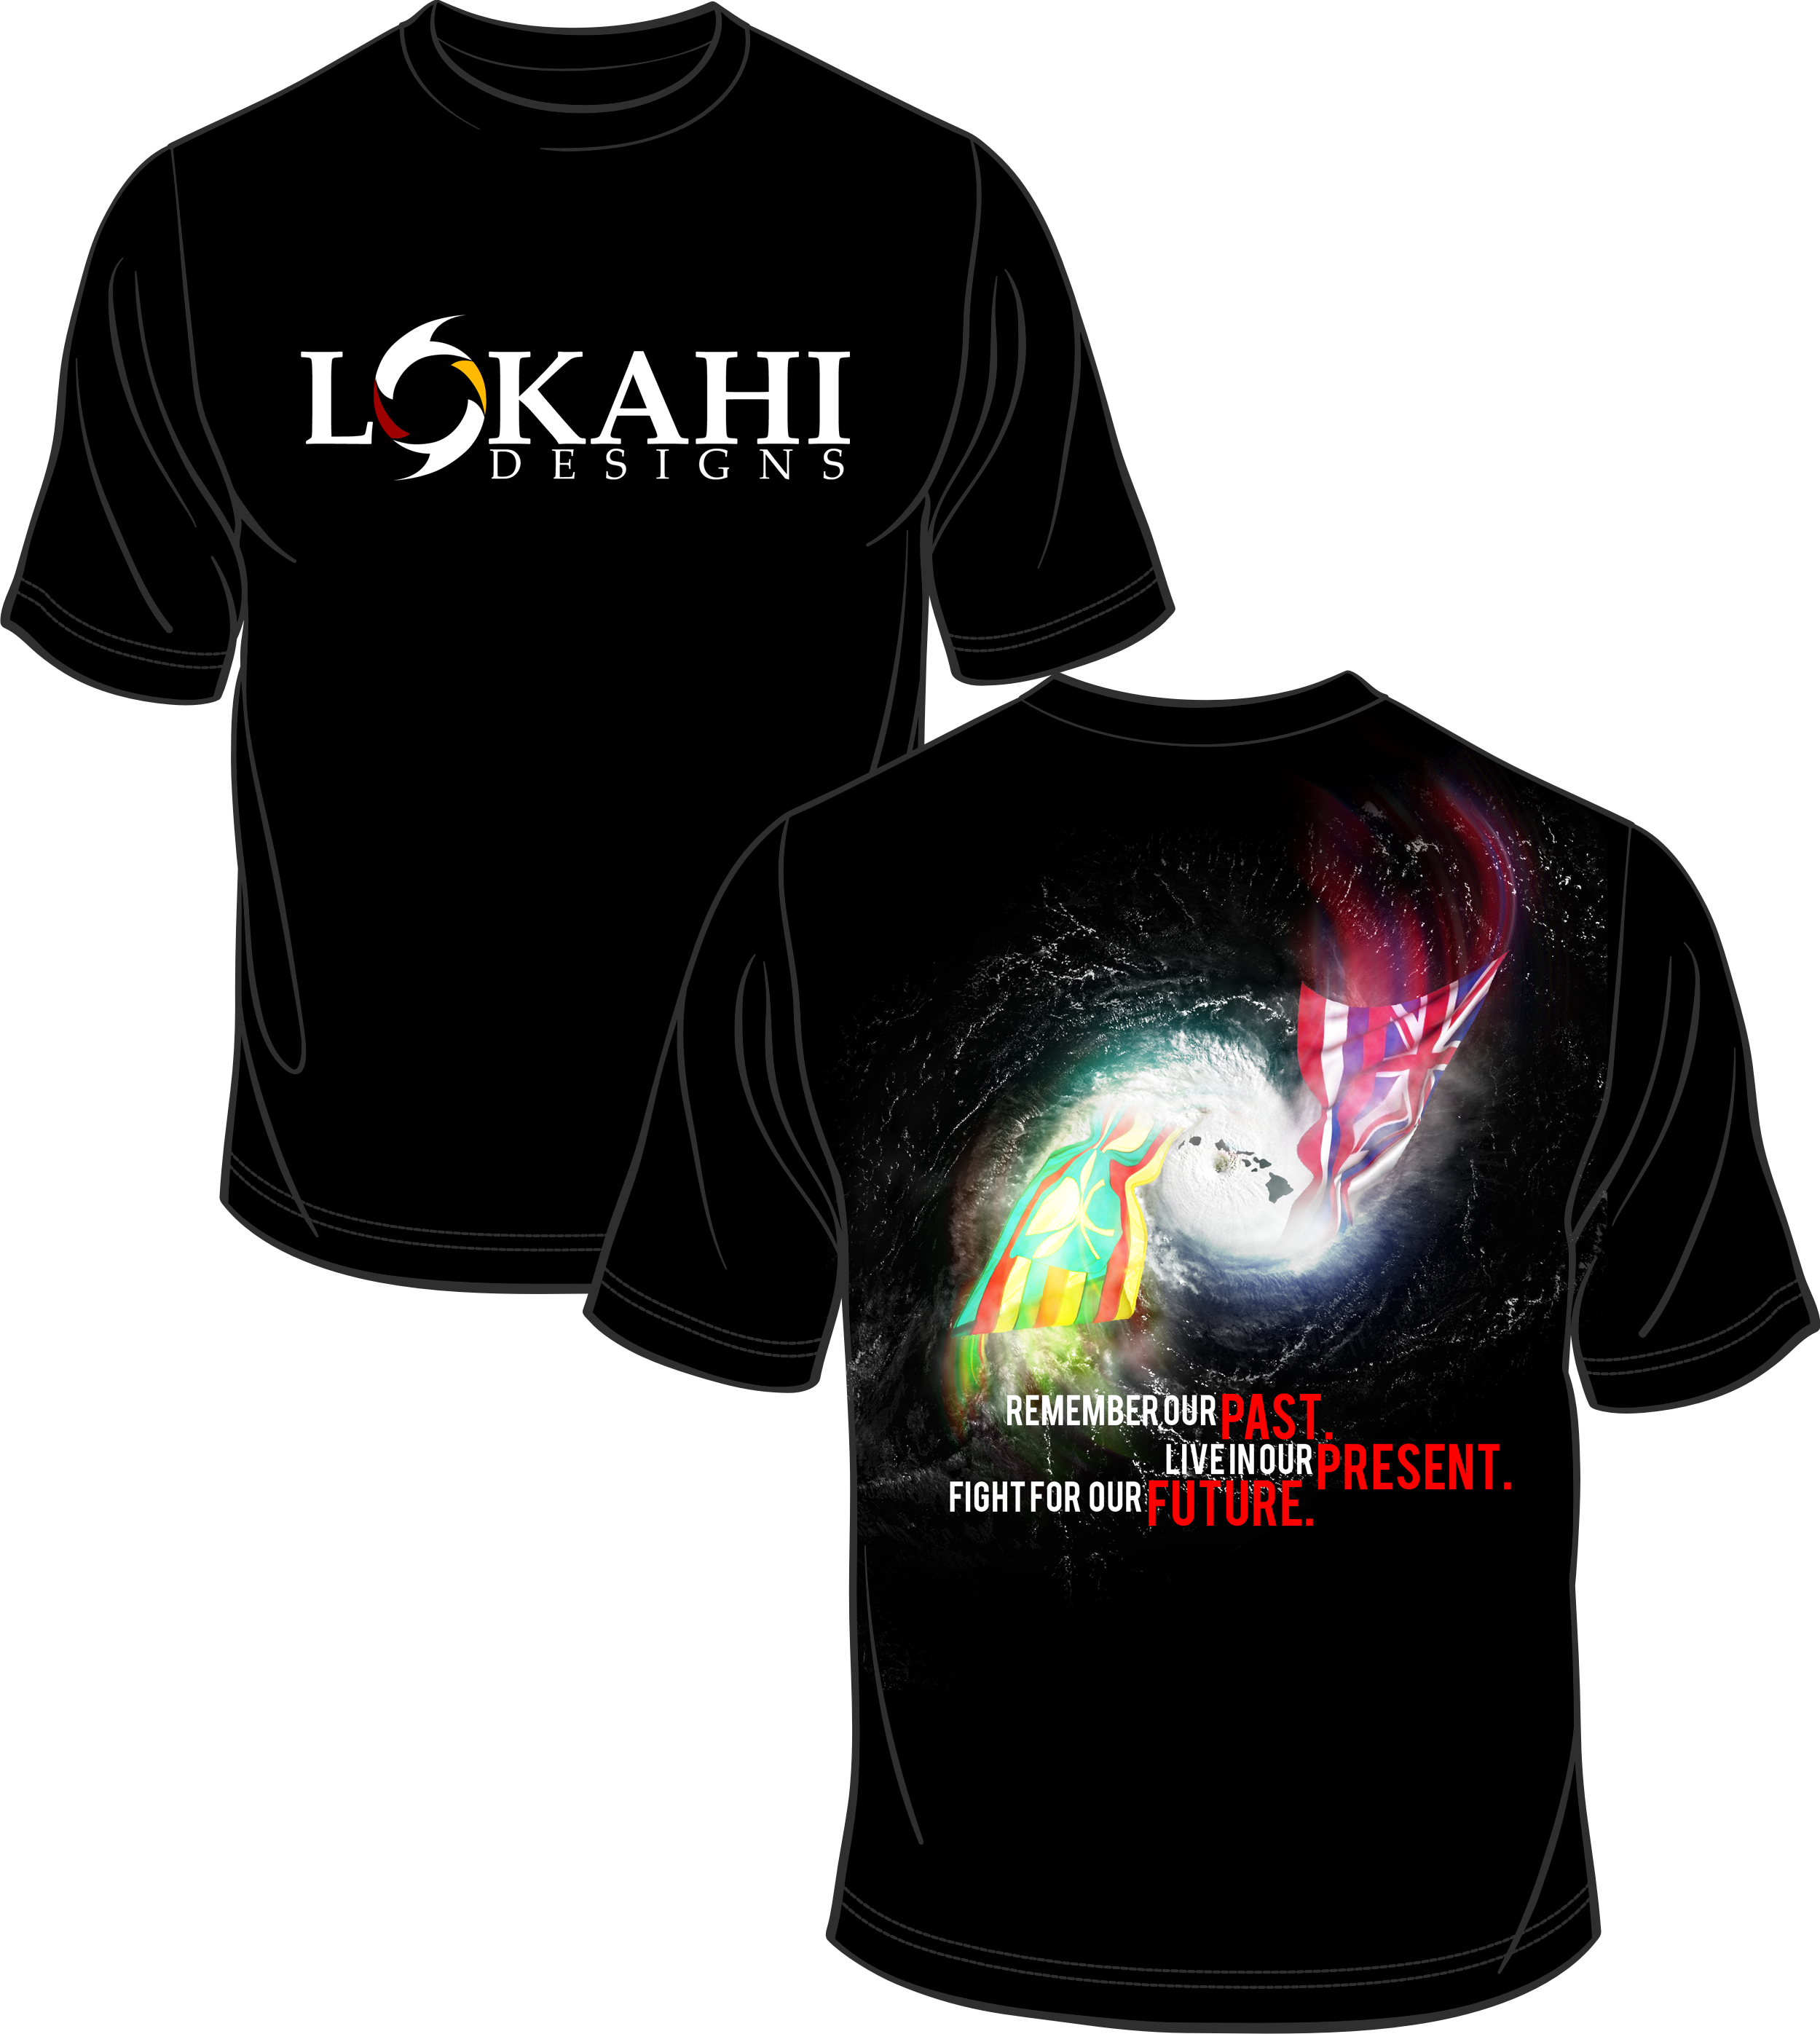 Clothing Design by Kenneth Joel - Entry No. 31 in the Clothing Design Contest Creative Clothing Design for LOKAHI designs.